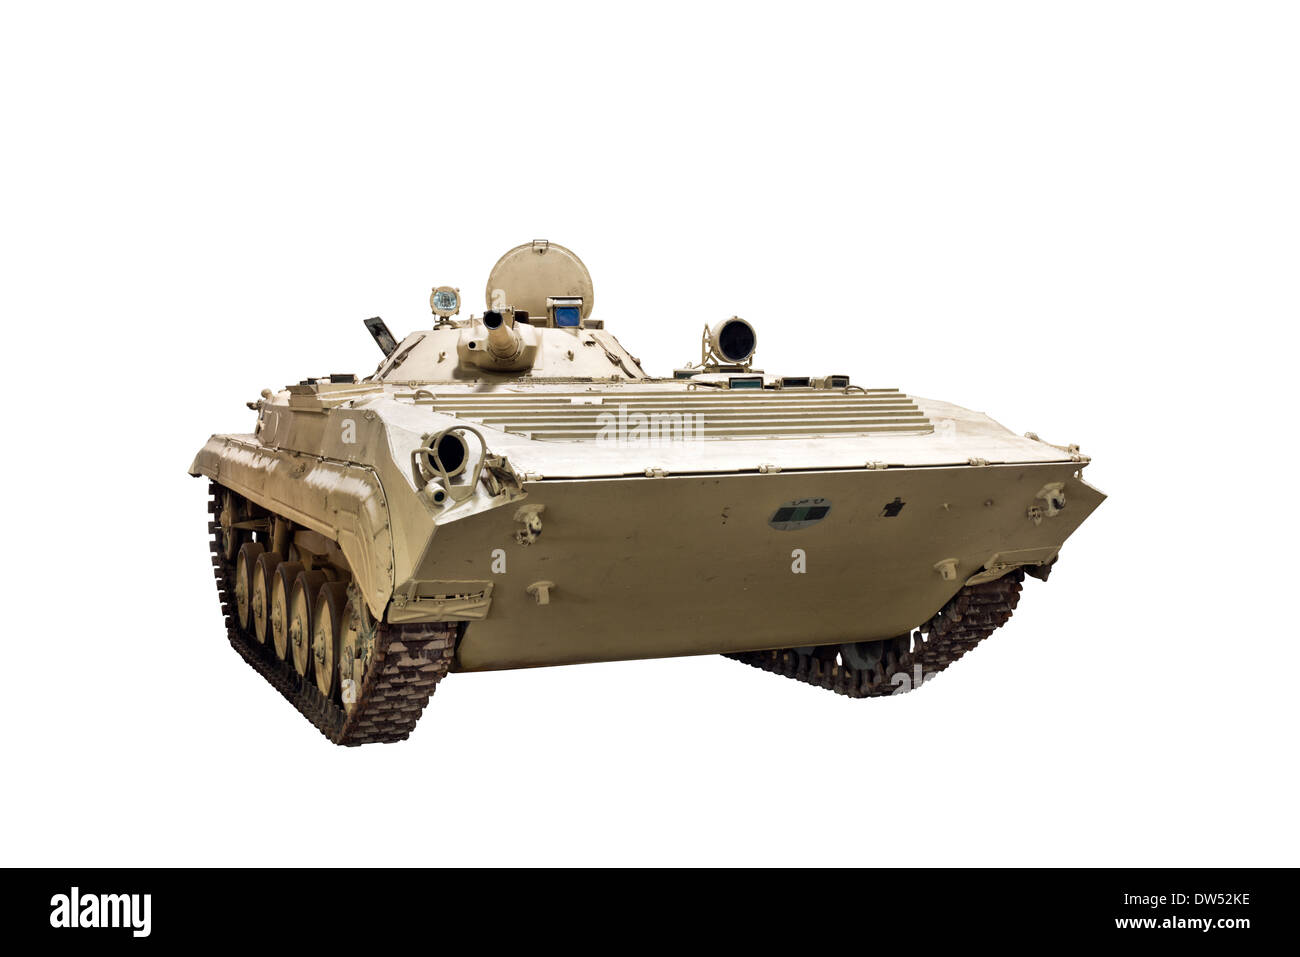 A Cut out of a BMP 1 Soviet tracked infantry fighting vehicle, a cross between an armoured personnel carrier & a light tank - Stock Image